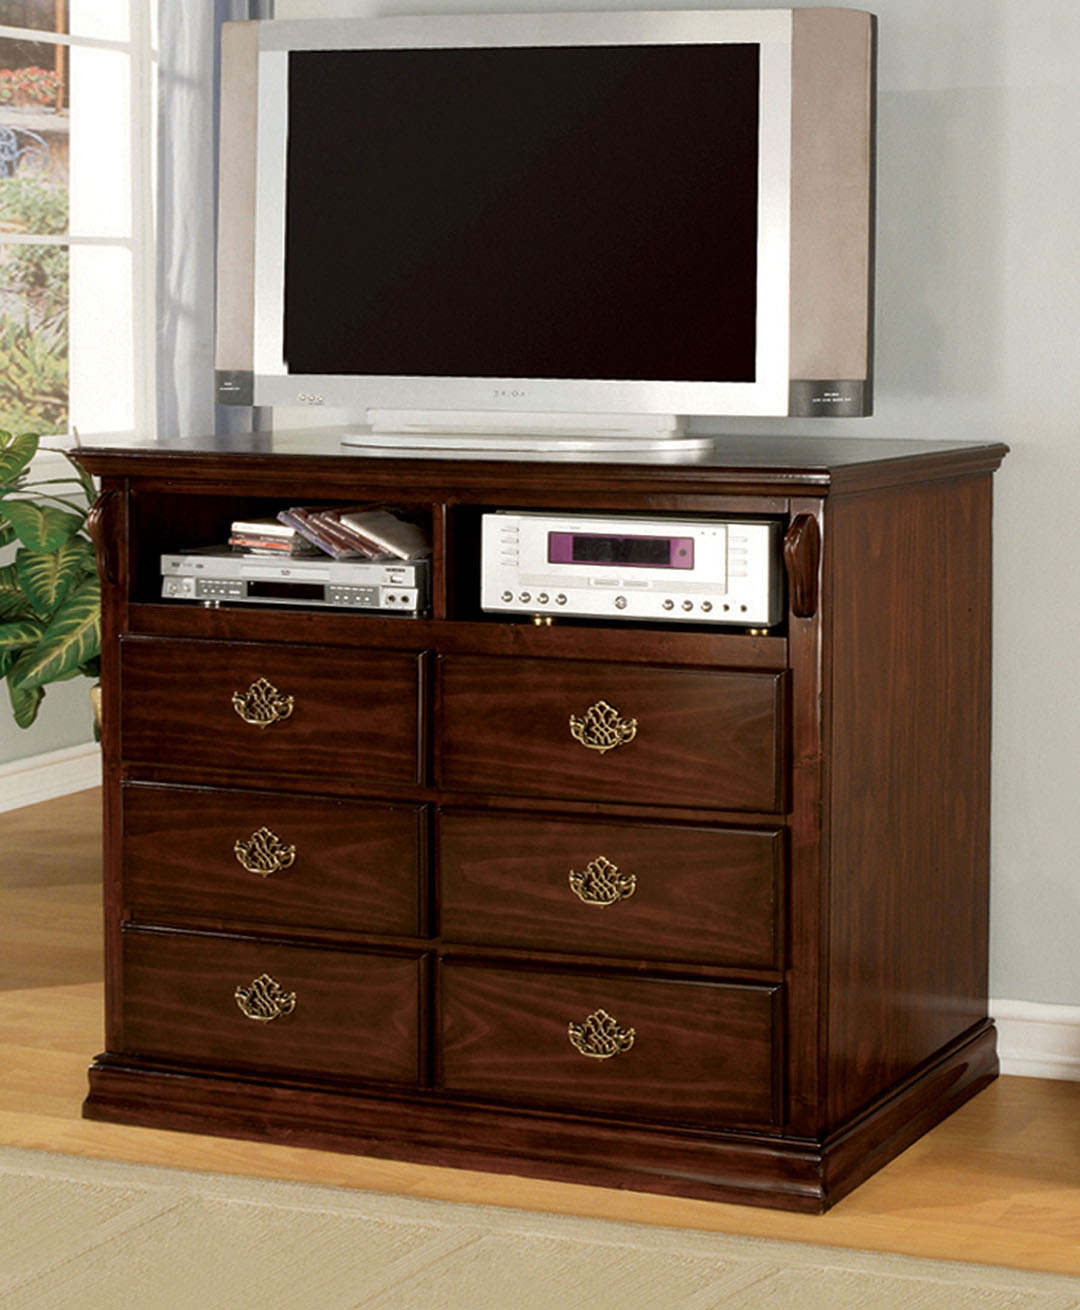 Tuscan Bedroom Furniture: Tuscan II Classic Traditional Poster Bed Dark Pine Bedroom